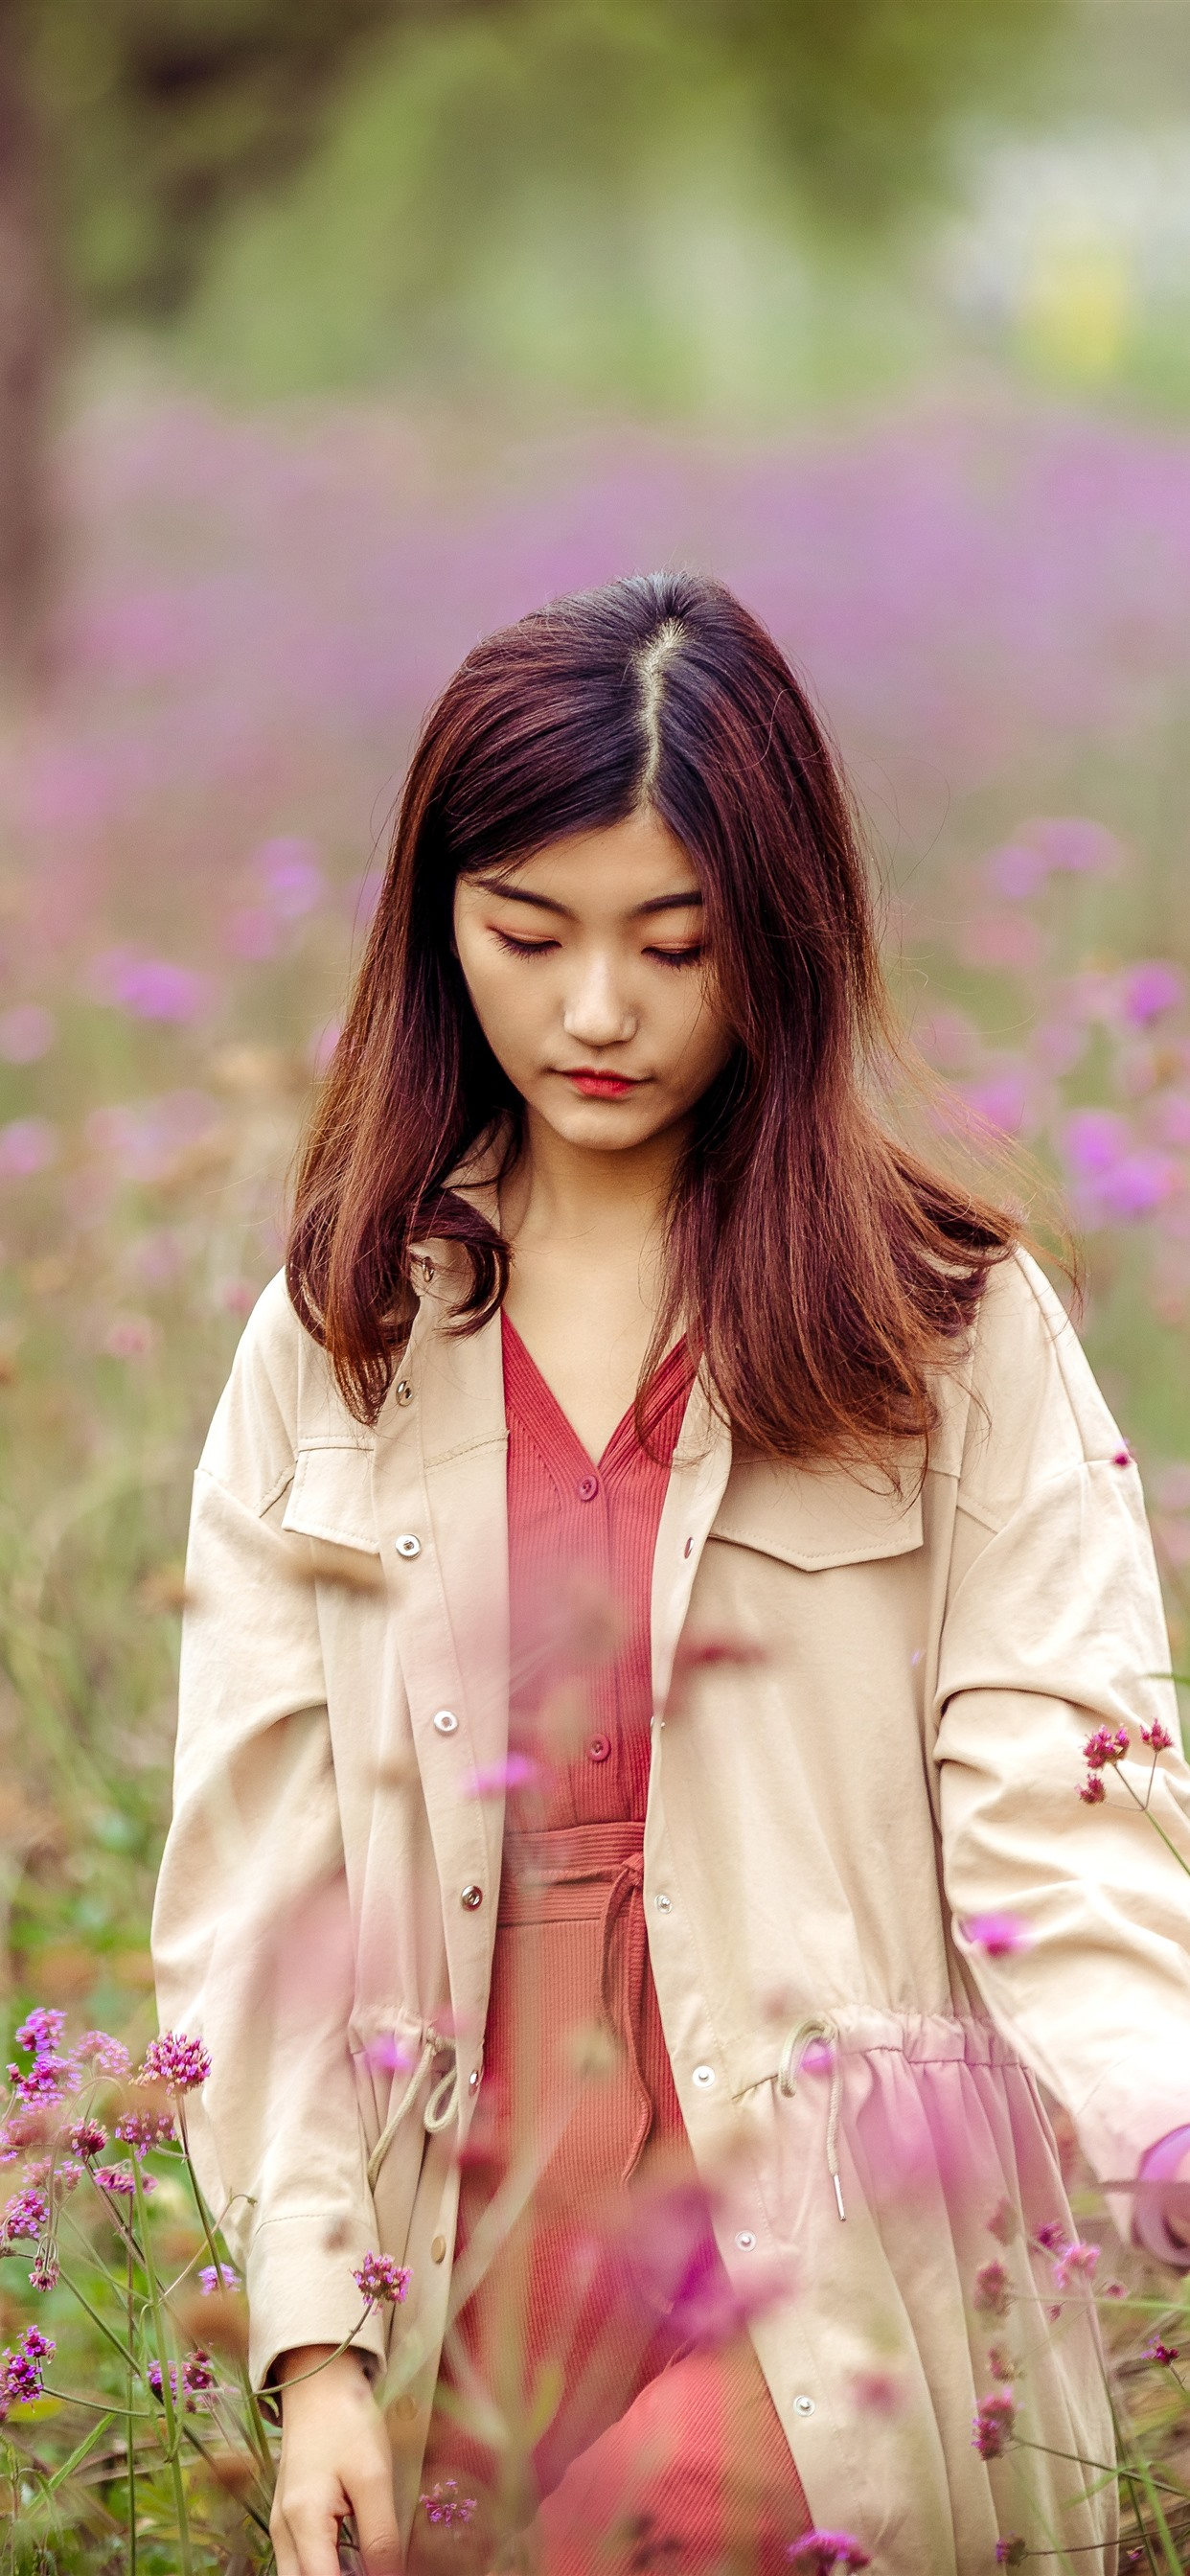 Wallpaper Sadness Girl Pink Wildflowers Hazy 7680x4320 Uhd 8k Picture Image